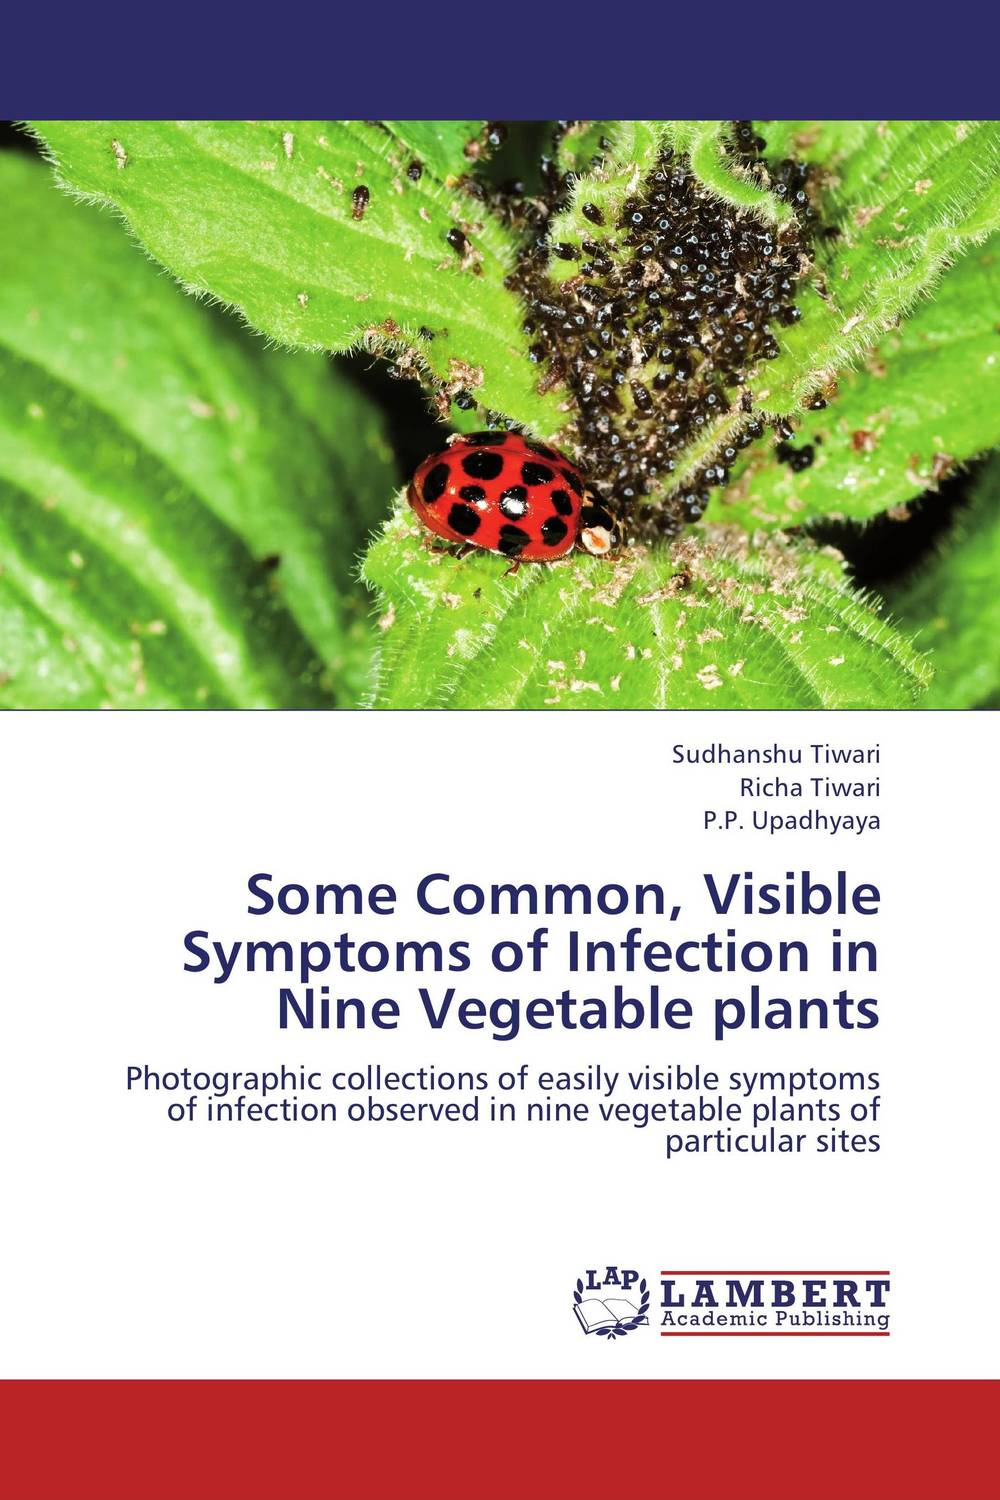 цены Some Common, Visible Symptoms of Infection in Nine Vegetable plants